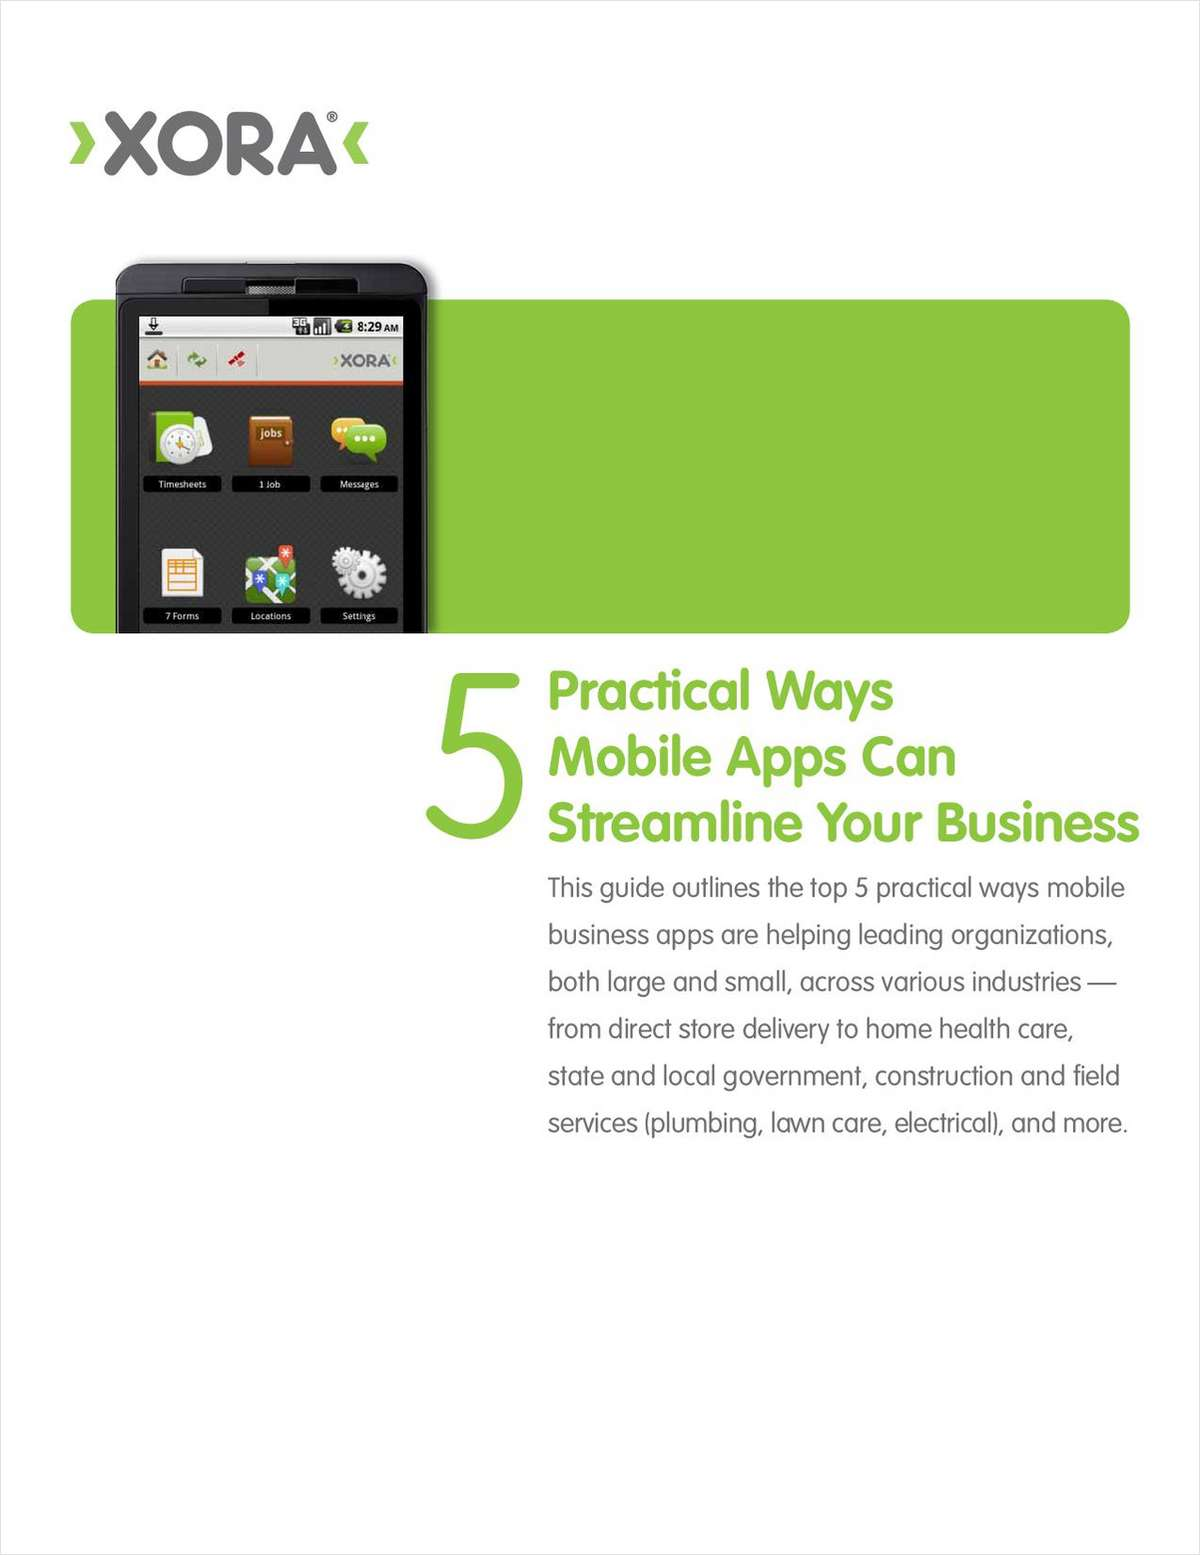 5 Practical Ways Mobile Apps Can Streamline Your Business